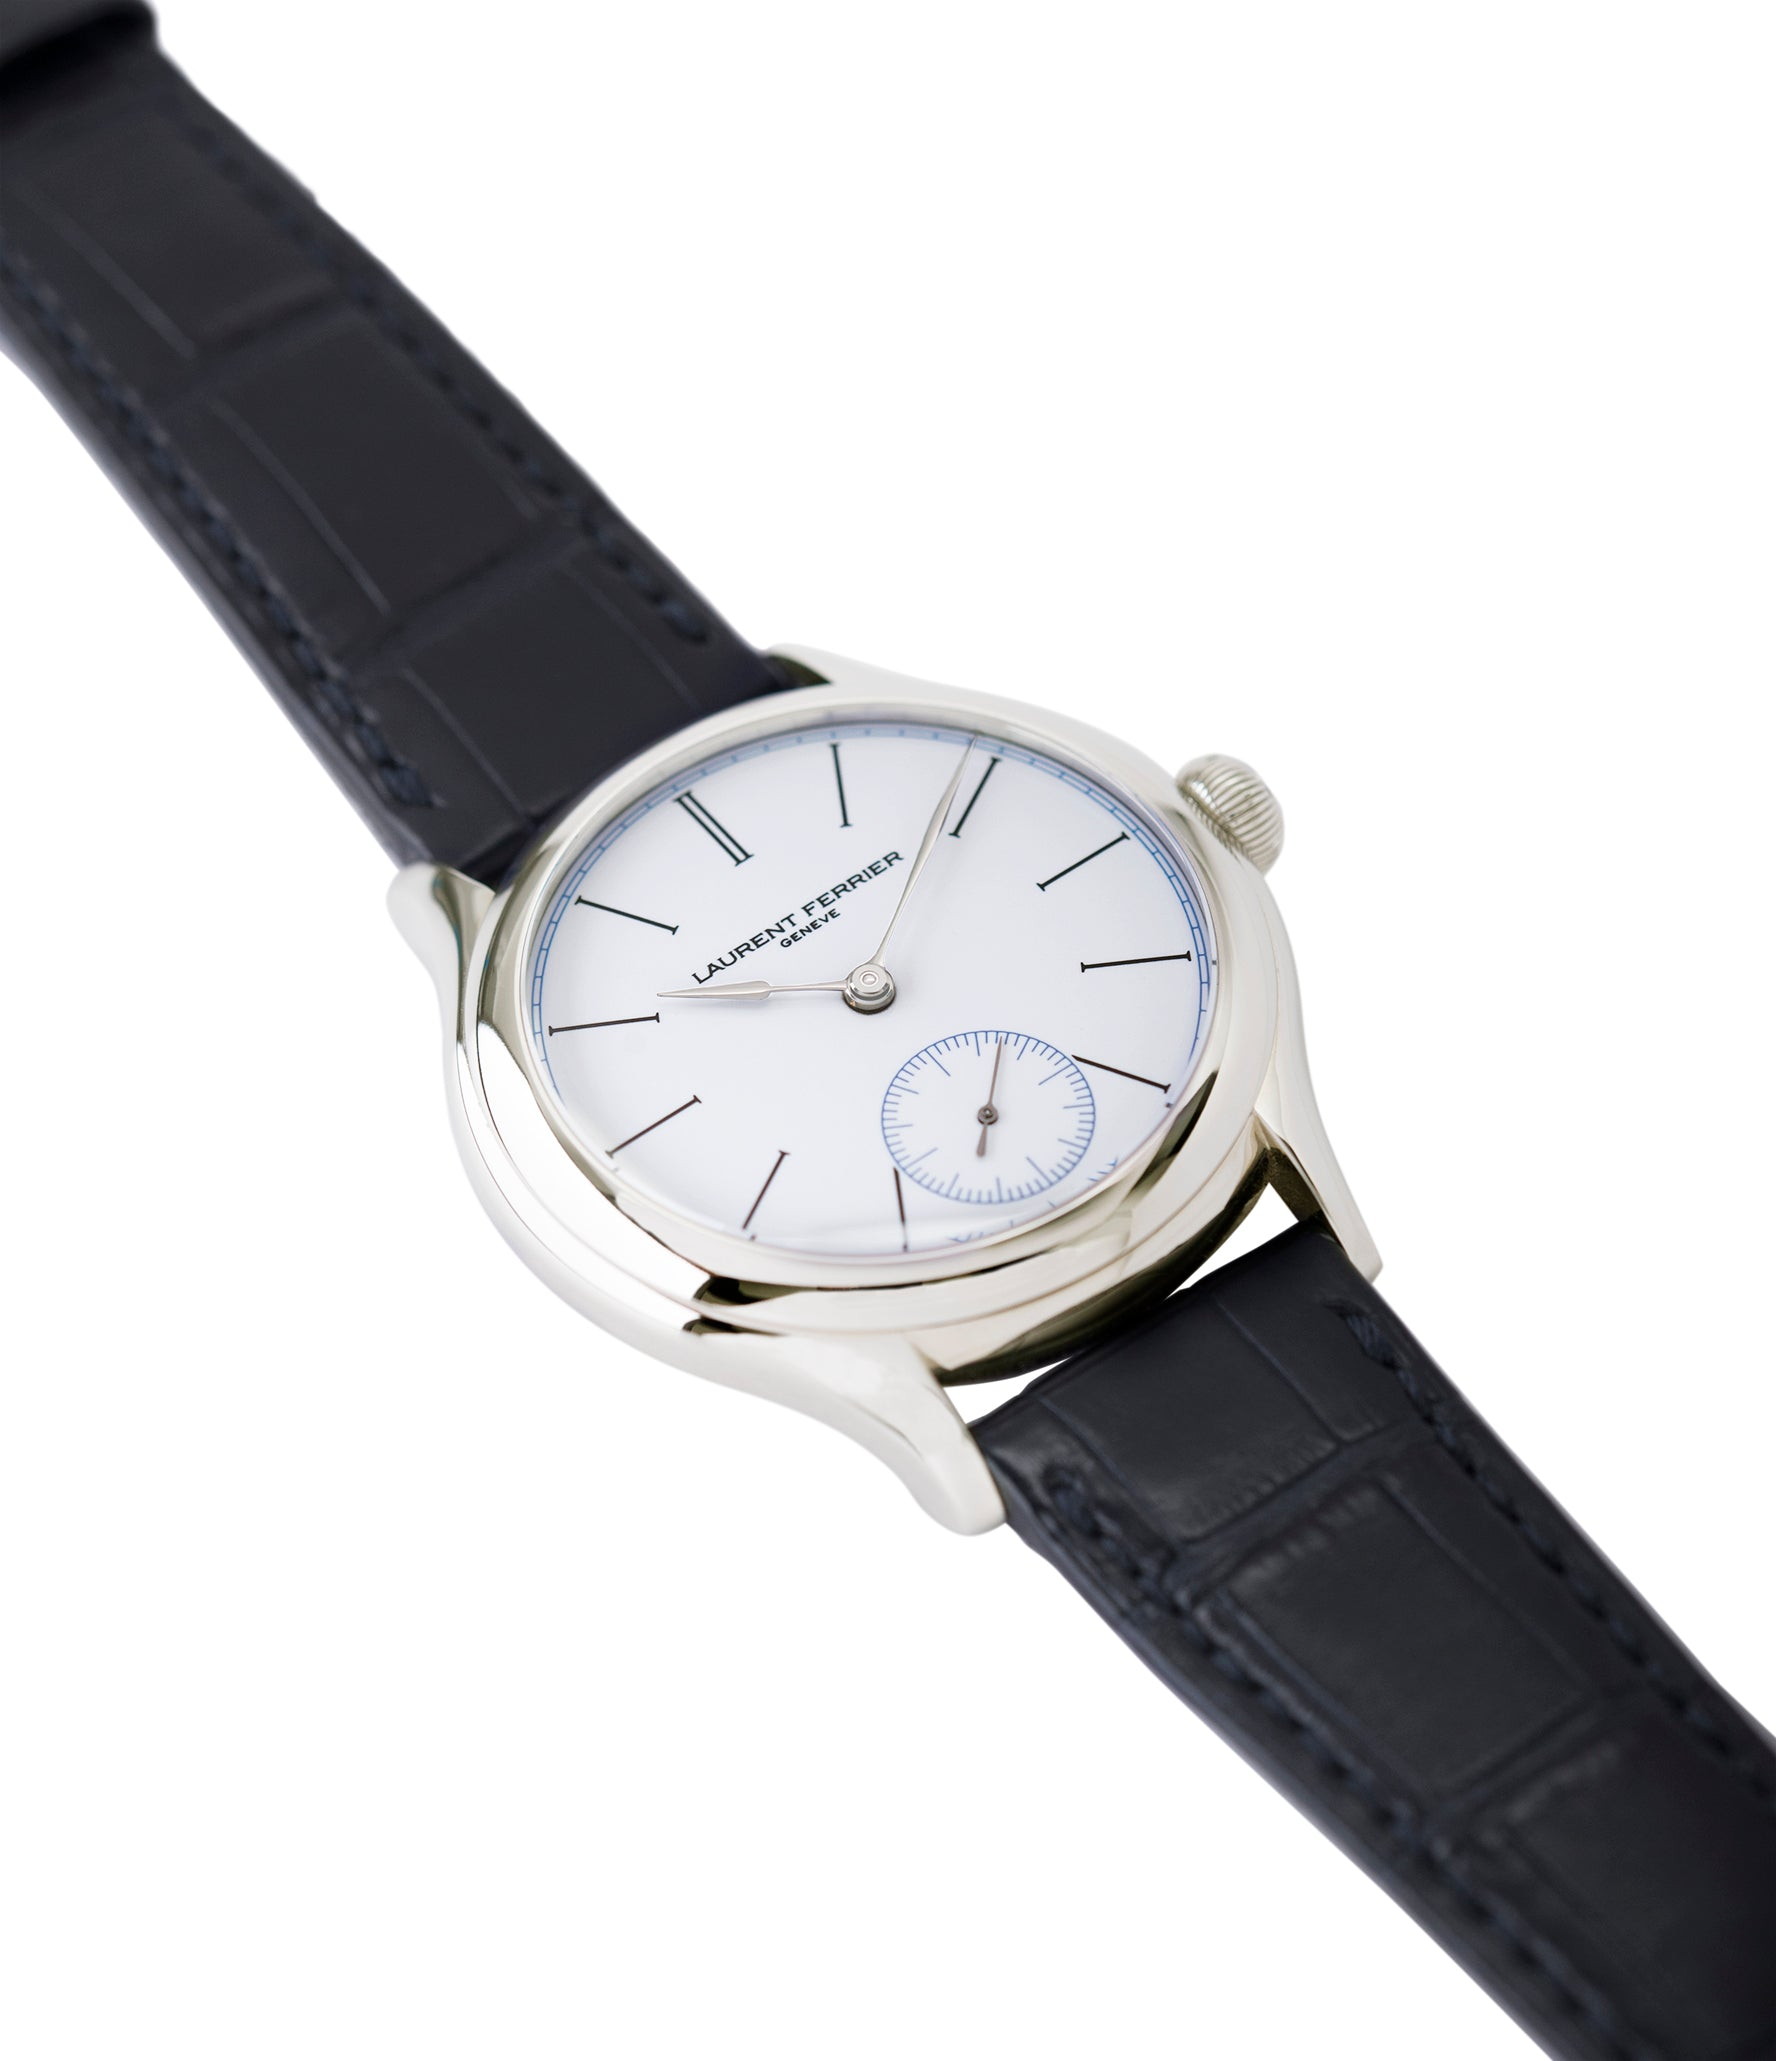 for sale Laurent Ferrier Galet Micro-Rotor FBN 230.02 Enamel dial steel watch for sale online at A Collected Man London UK approved seller of independent watchmaker Laurent Ferrier